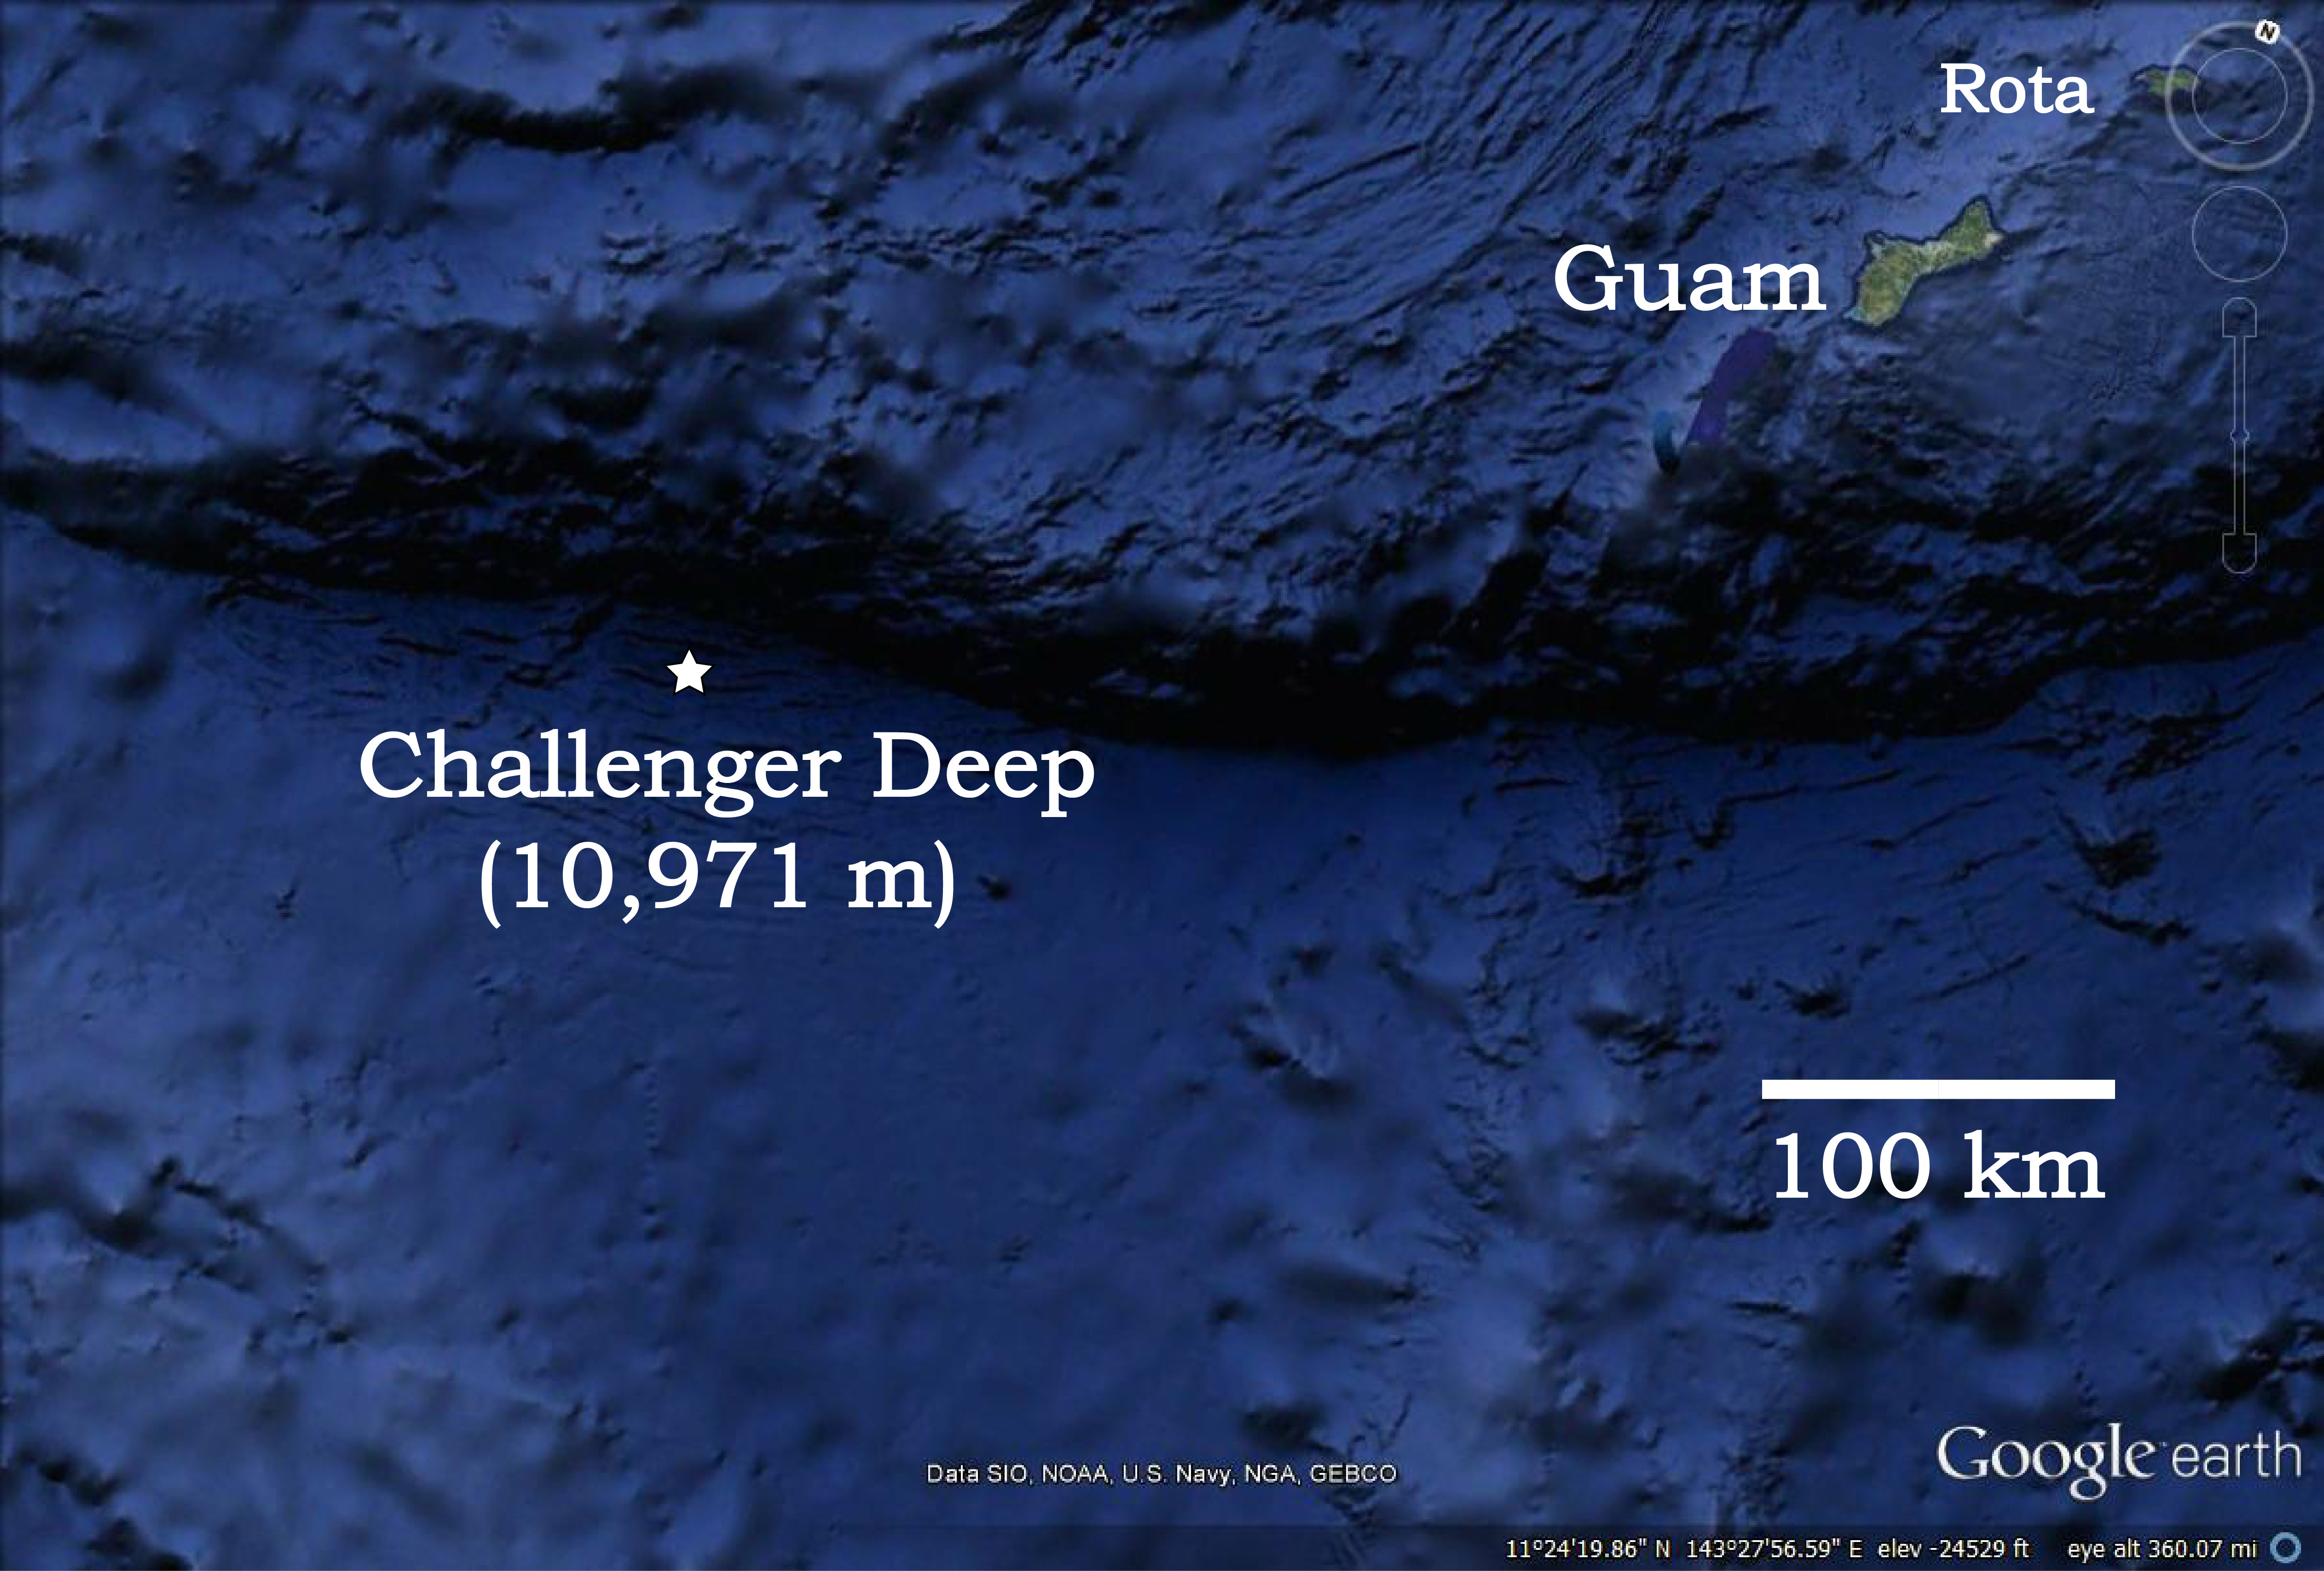 Ambient sound at full ocean depth eavesdropping on the challenger deep publicscrutiny Choice Image